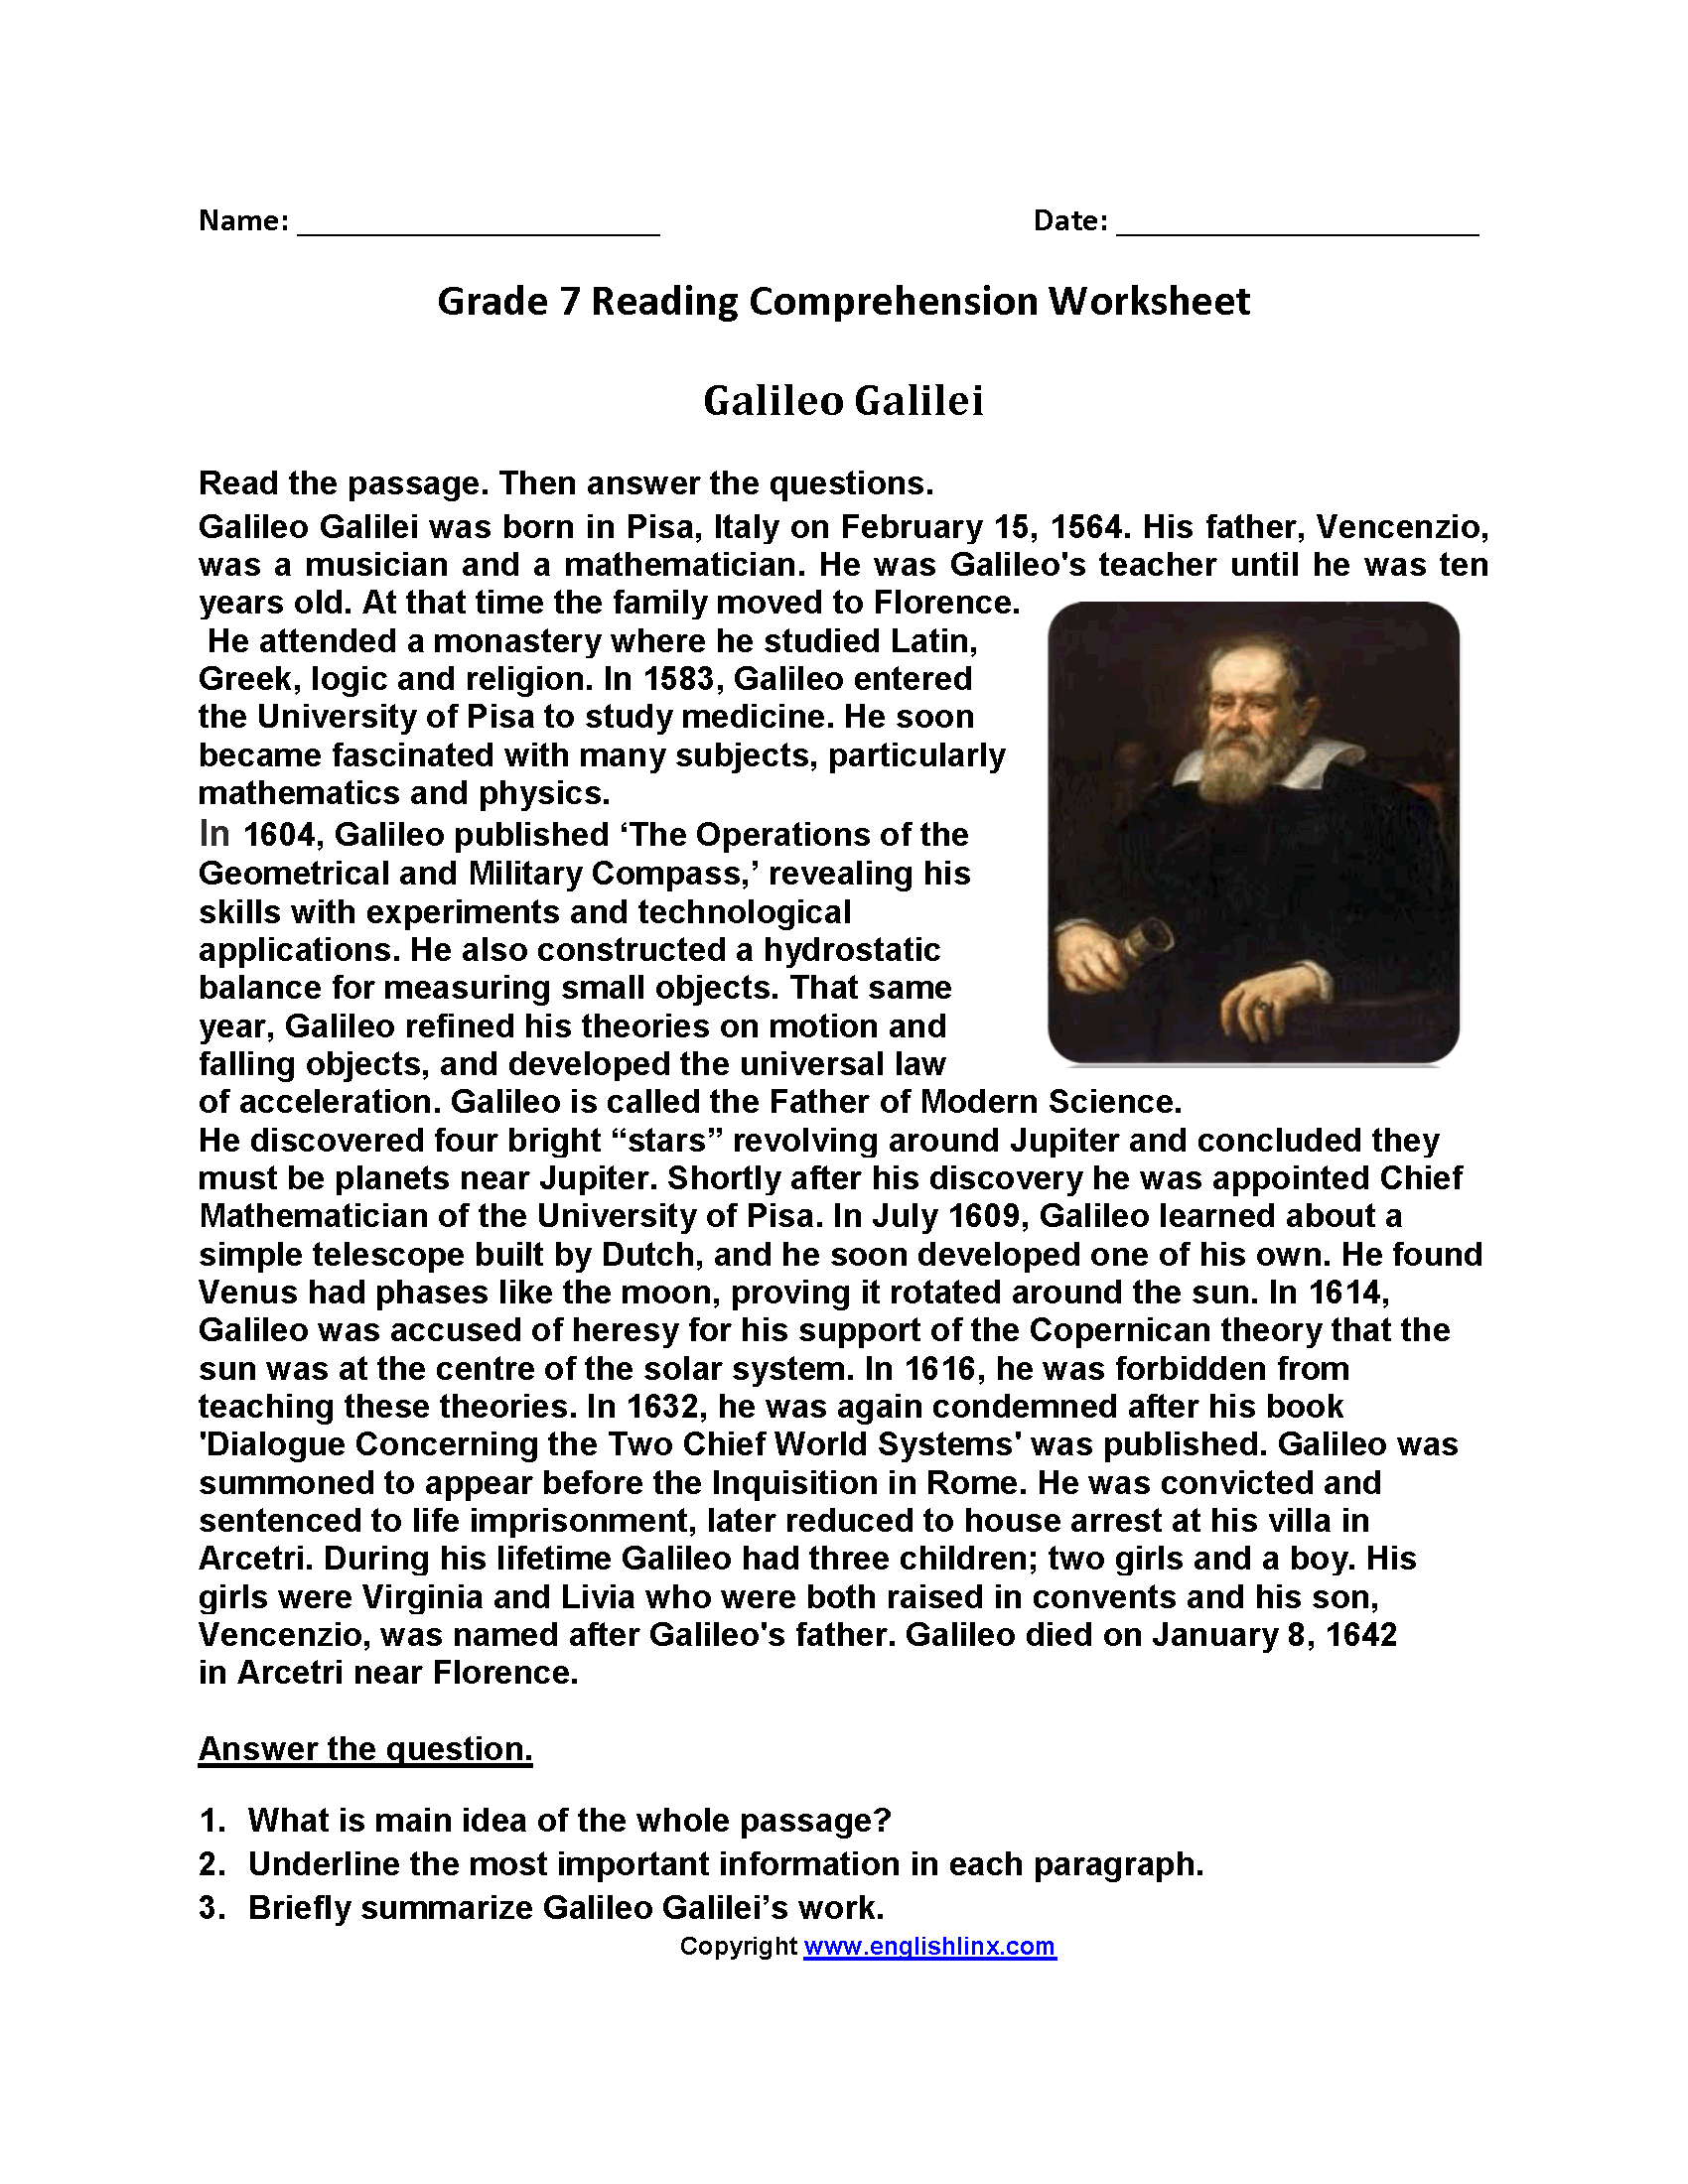 Galileo Galiliseventh Grade Reading Worksheets Grade 7